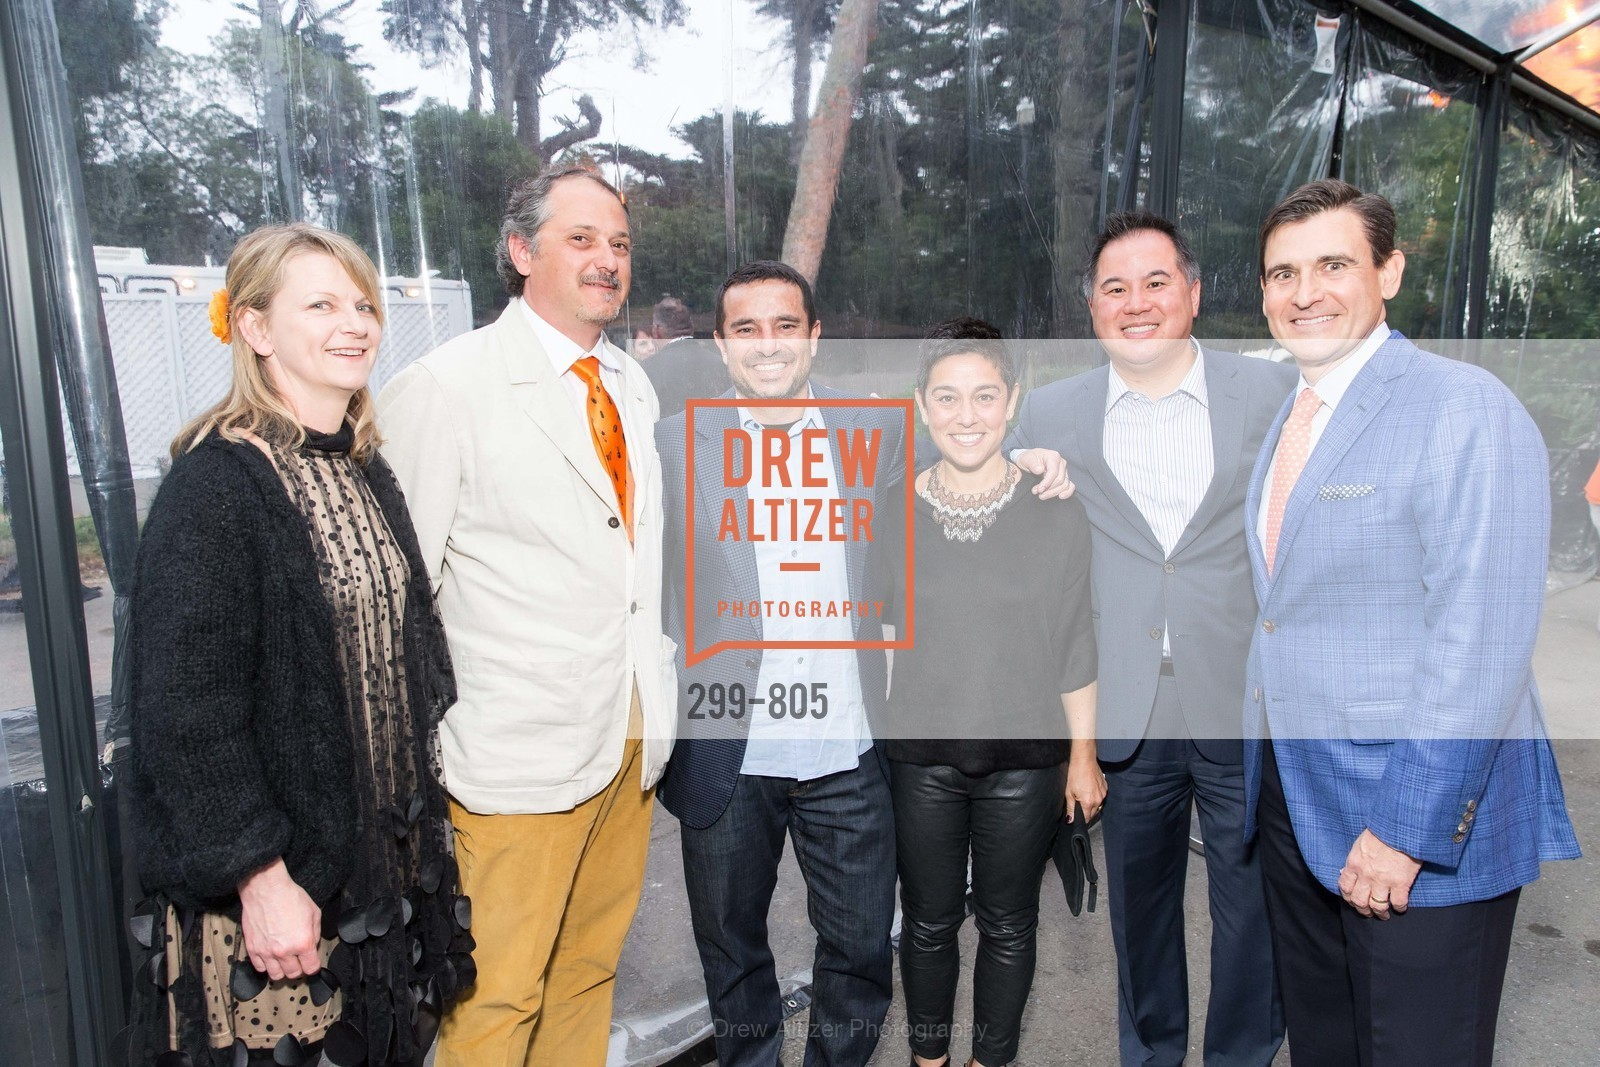 Shay Redfield, Jason Waters, Phil Ginsburg, Emily Ginsburg, Bill Ping, Robert Pedrero, ZOOFEST 2015, US, April 26th, 2015,Drew Altizer, Drew Altizer Photography, full-service event agency, private events, San Francisco photographer, photographer California